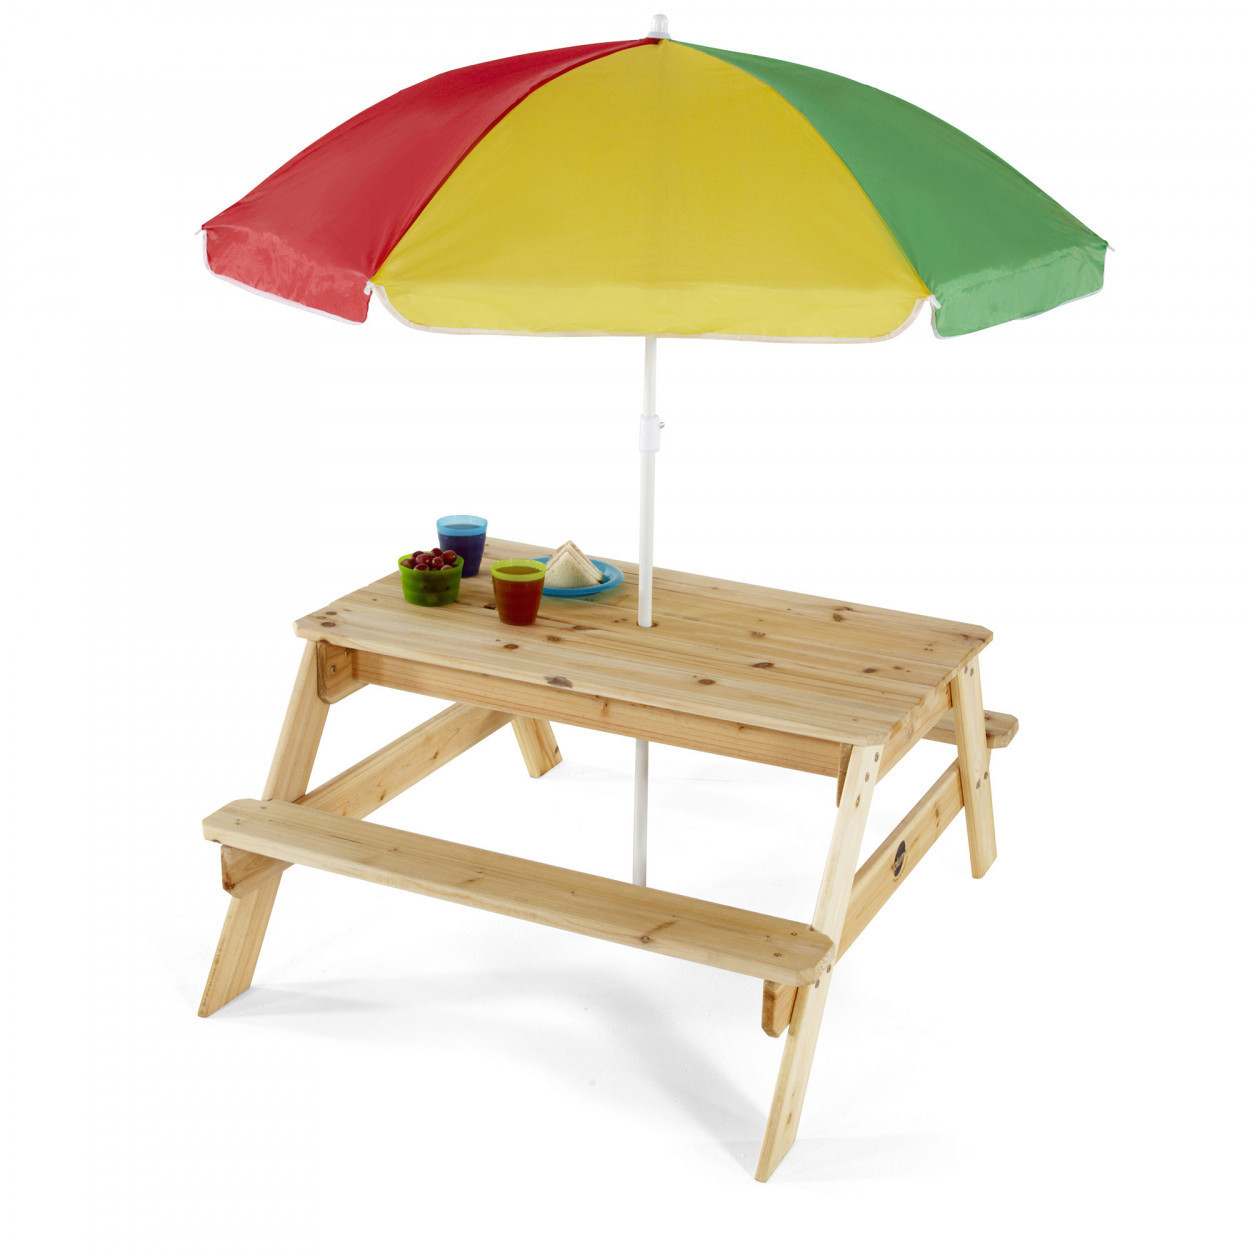 Plum Children's Garden Picnic Table and Parasol